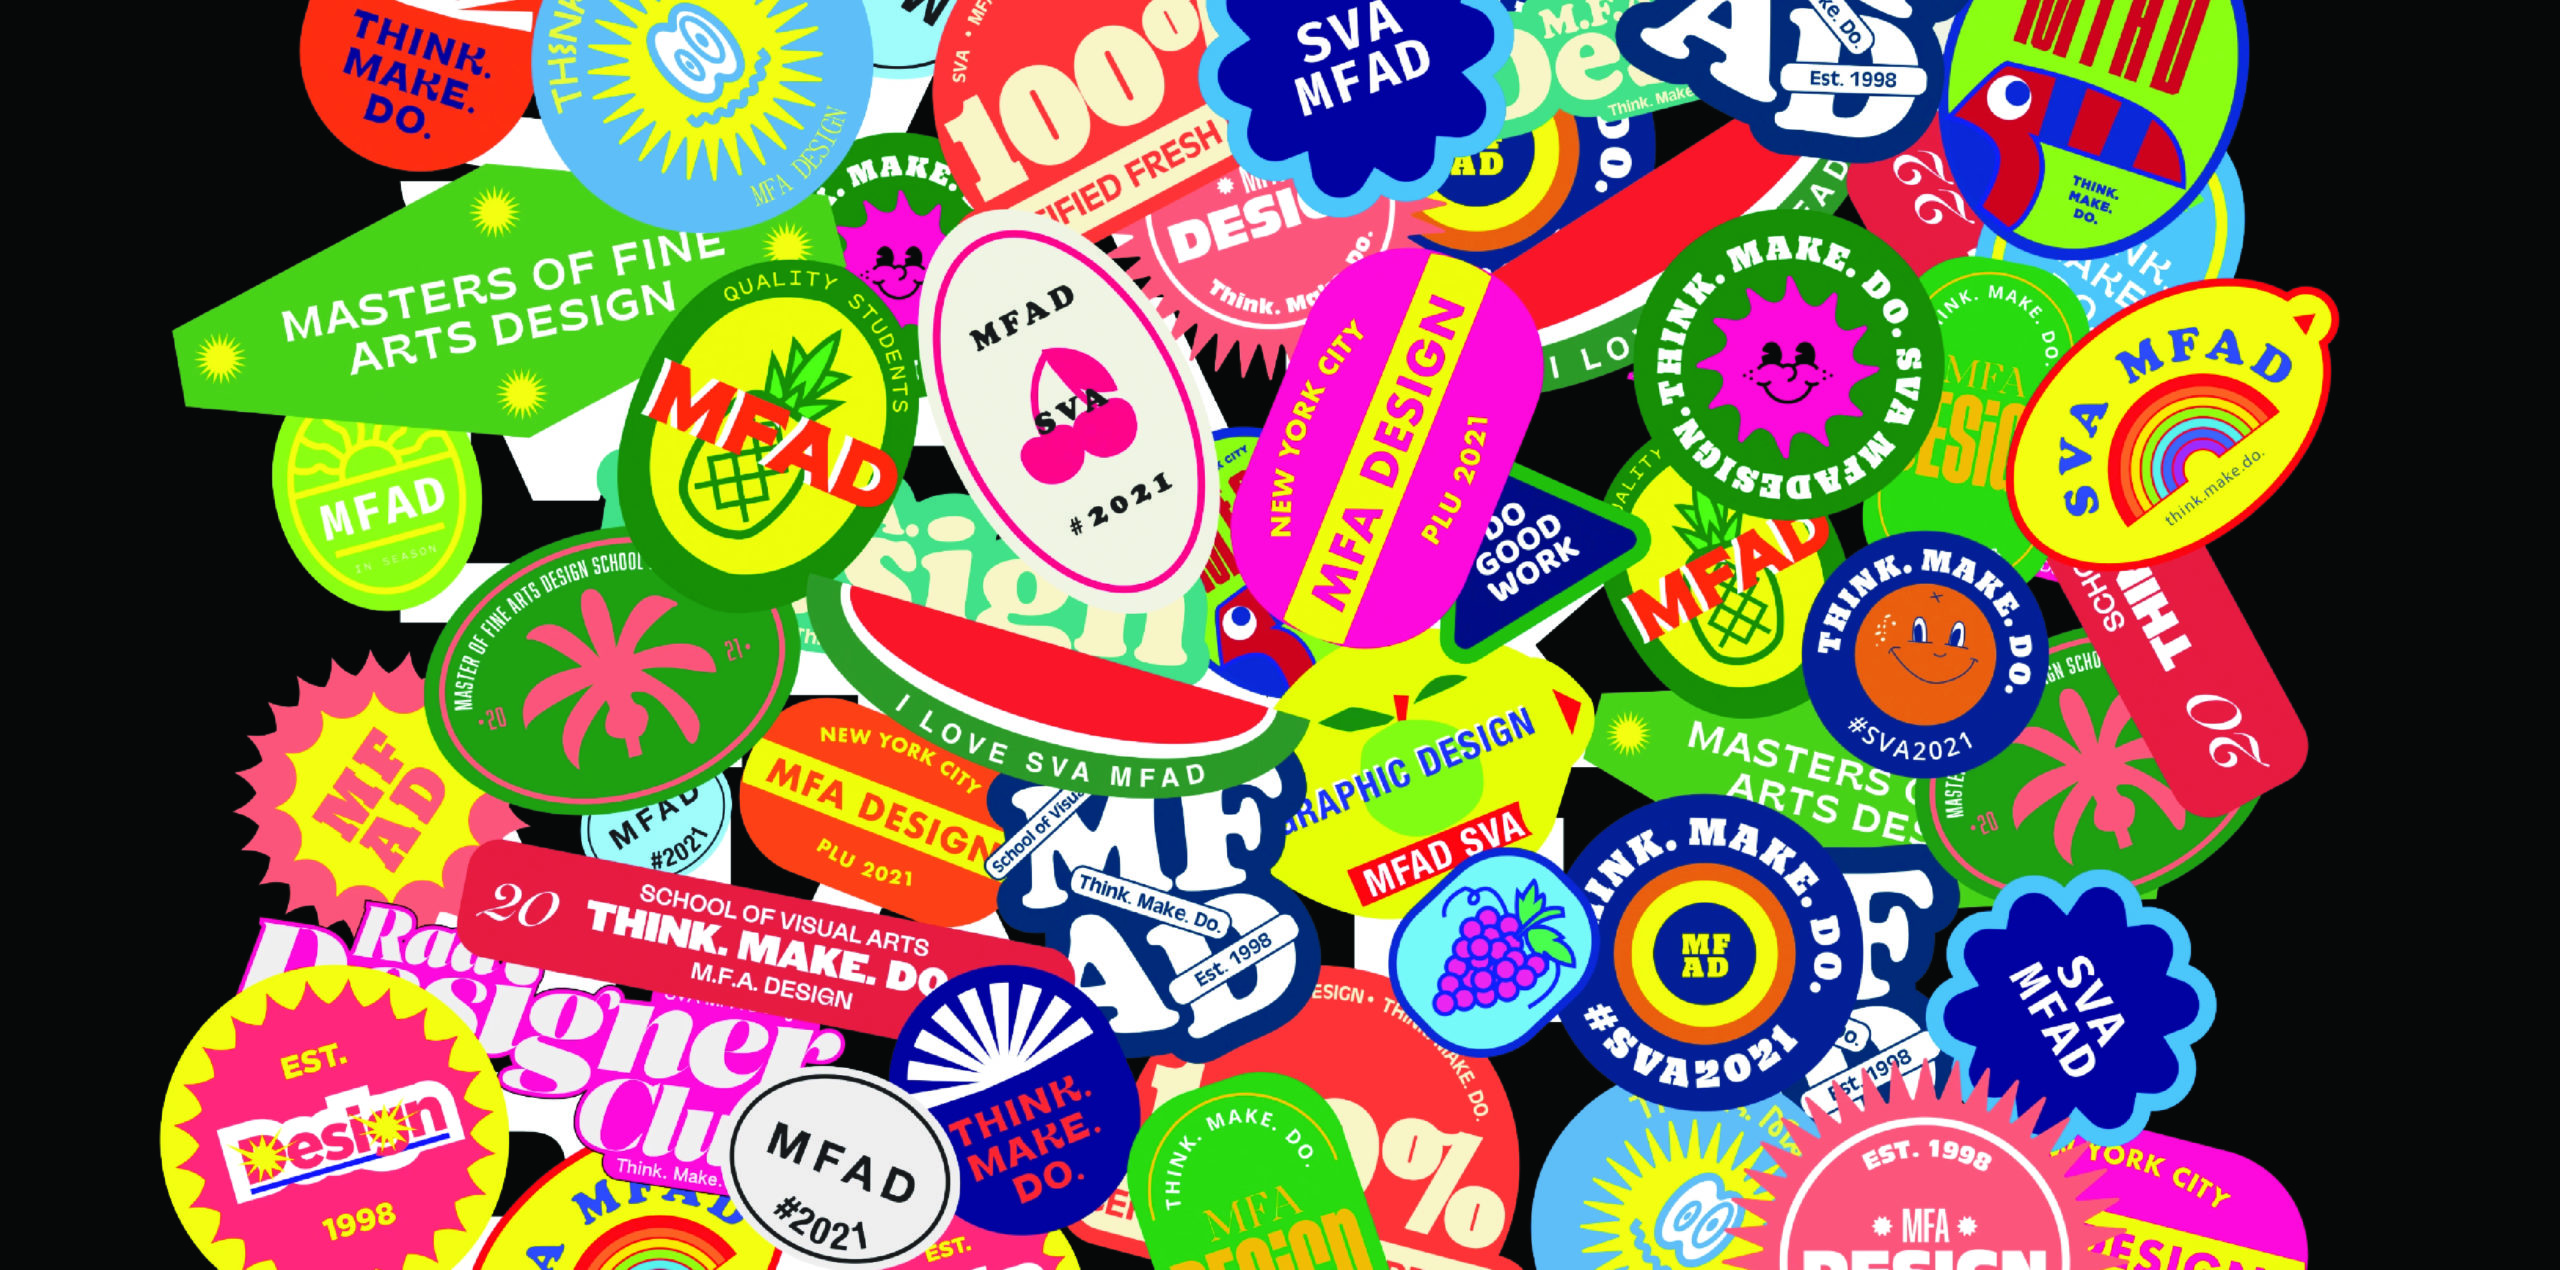 Colorful stickers with design messaging